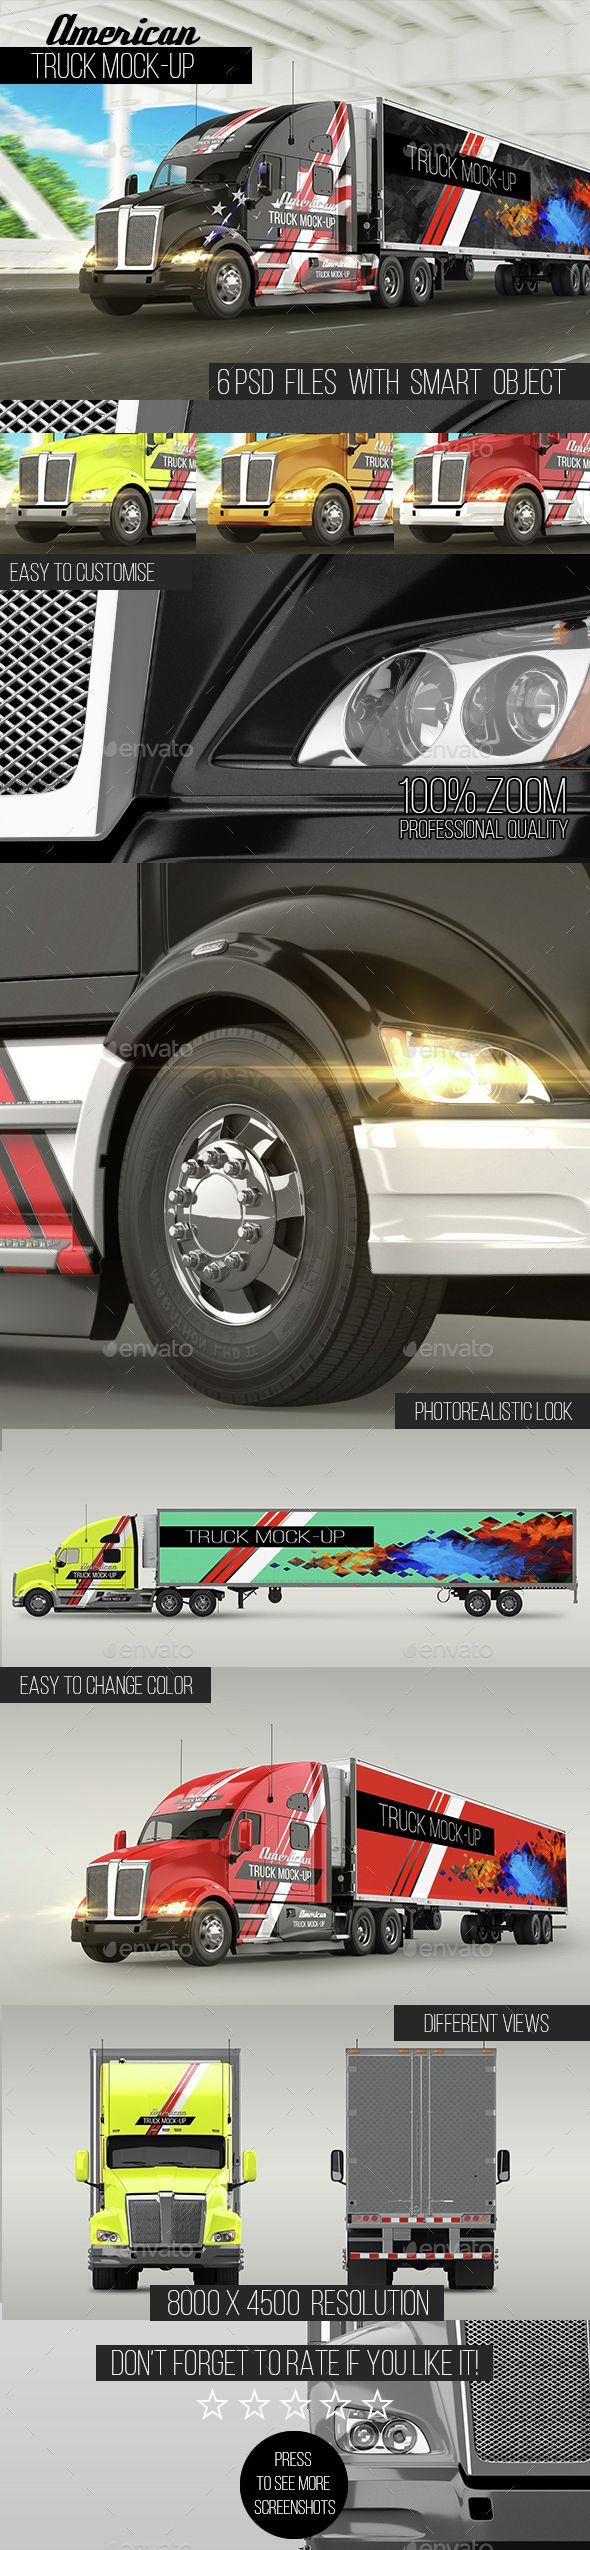 Car sticker design psd - American Truck Mockup Photoshop Psd Car Mockup Available Here Https